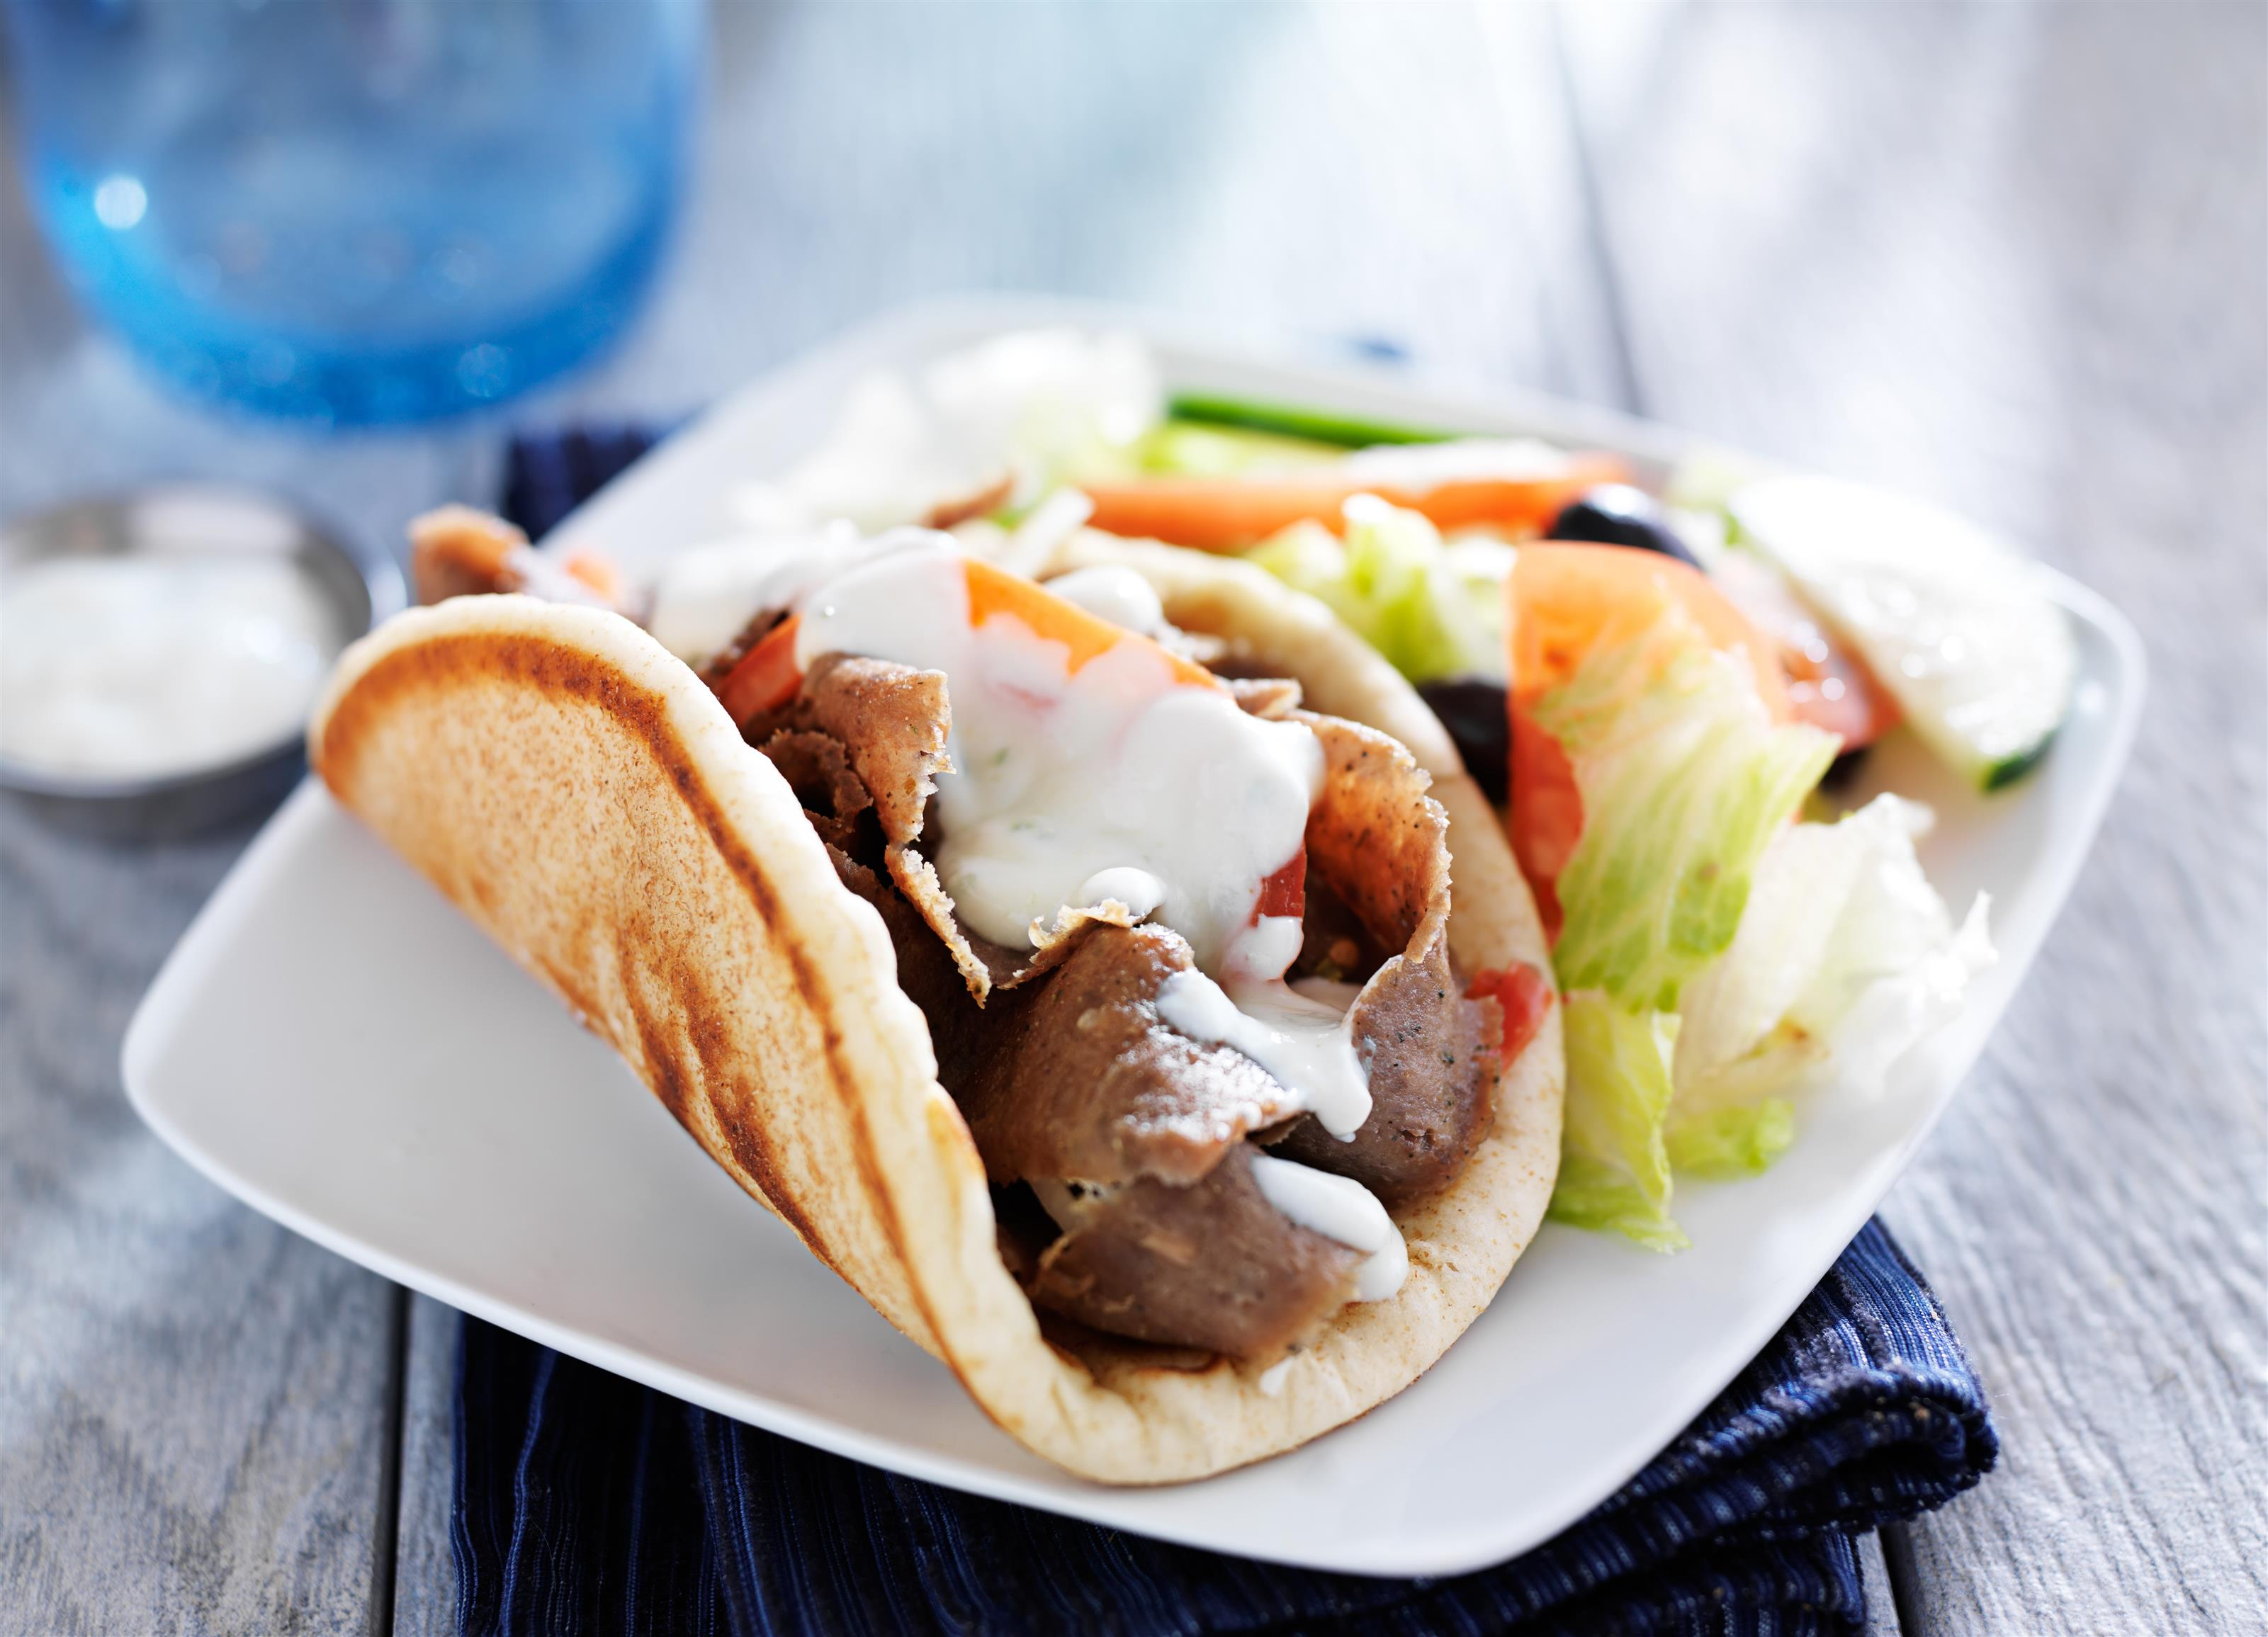 gyro on pita with lettuce on side